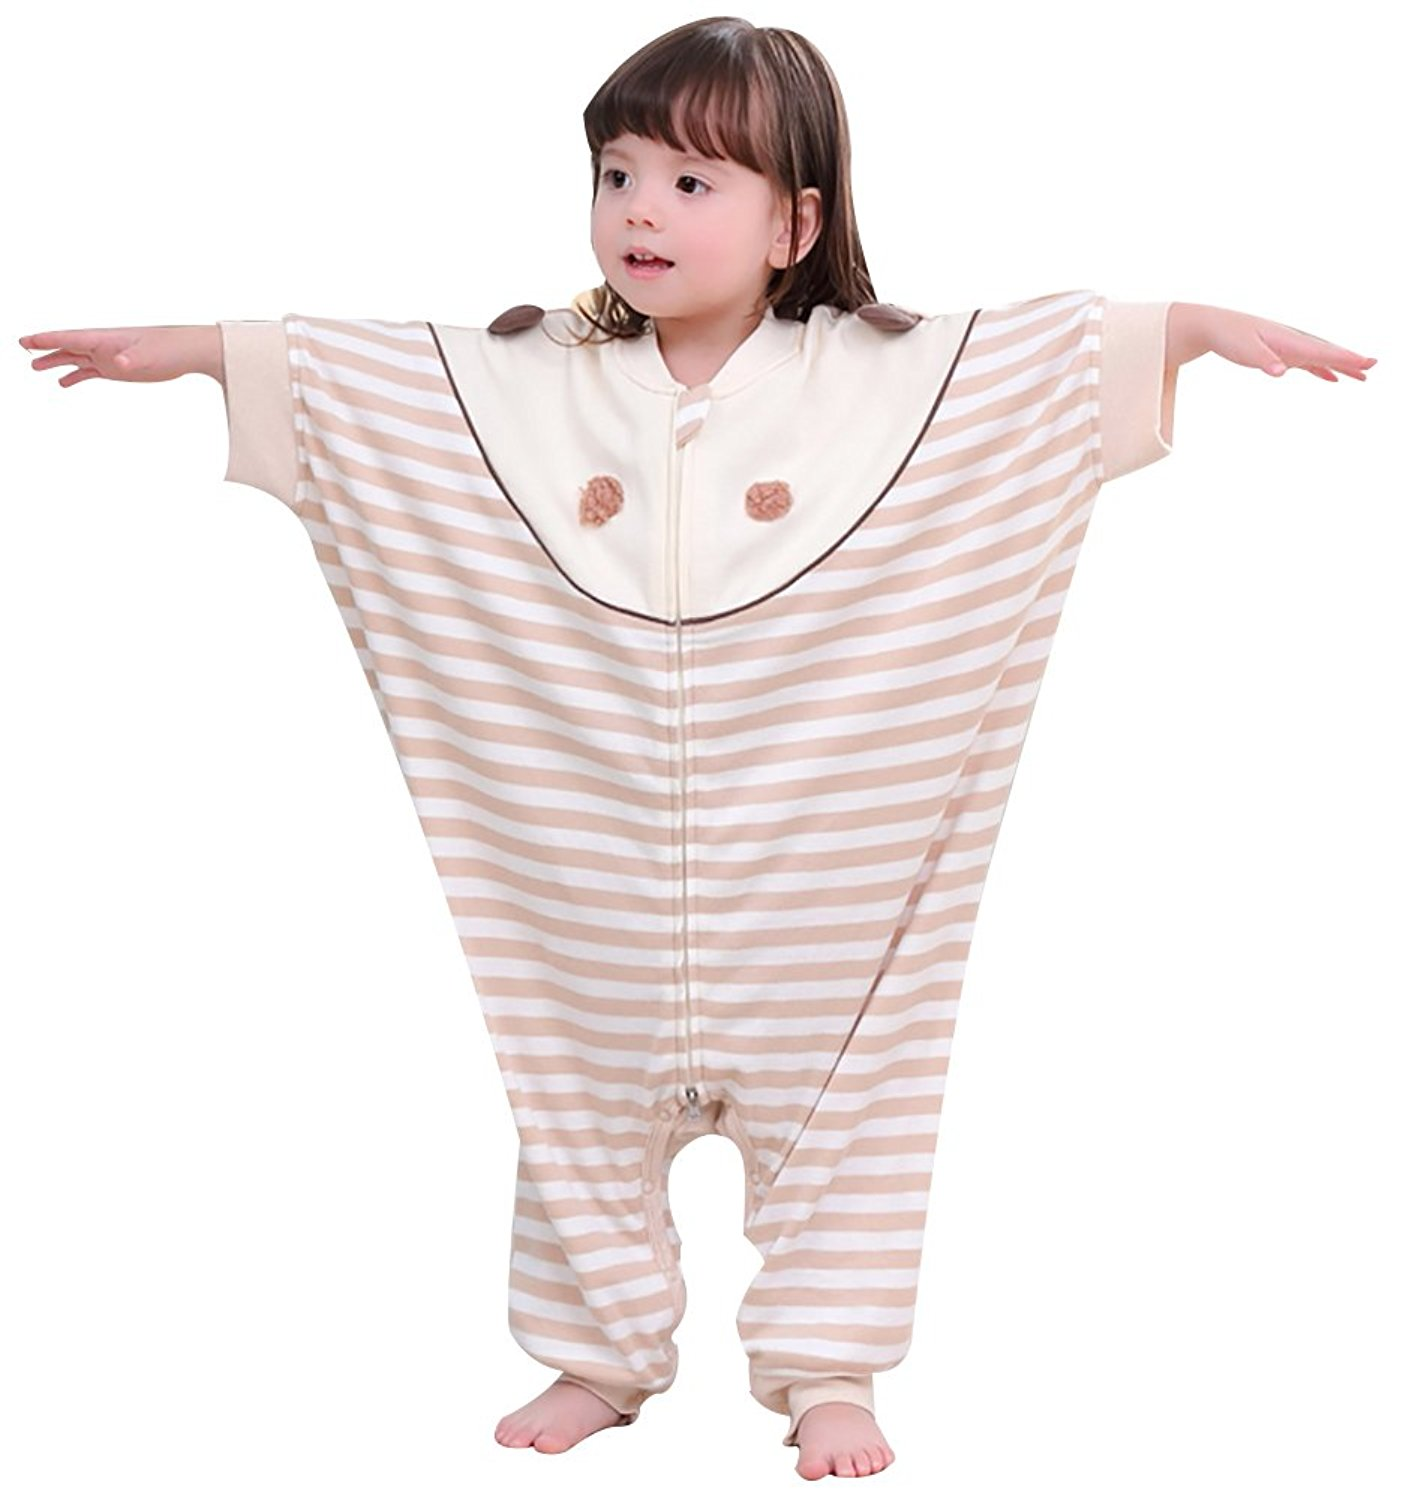 bf72bd5970 Get Quotations · Luyusbaby Sleeping Bag Organic Cotton Bat Sleeve Baby  Wearable Blanket with Feet